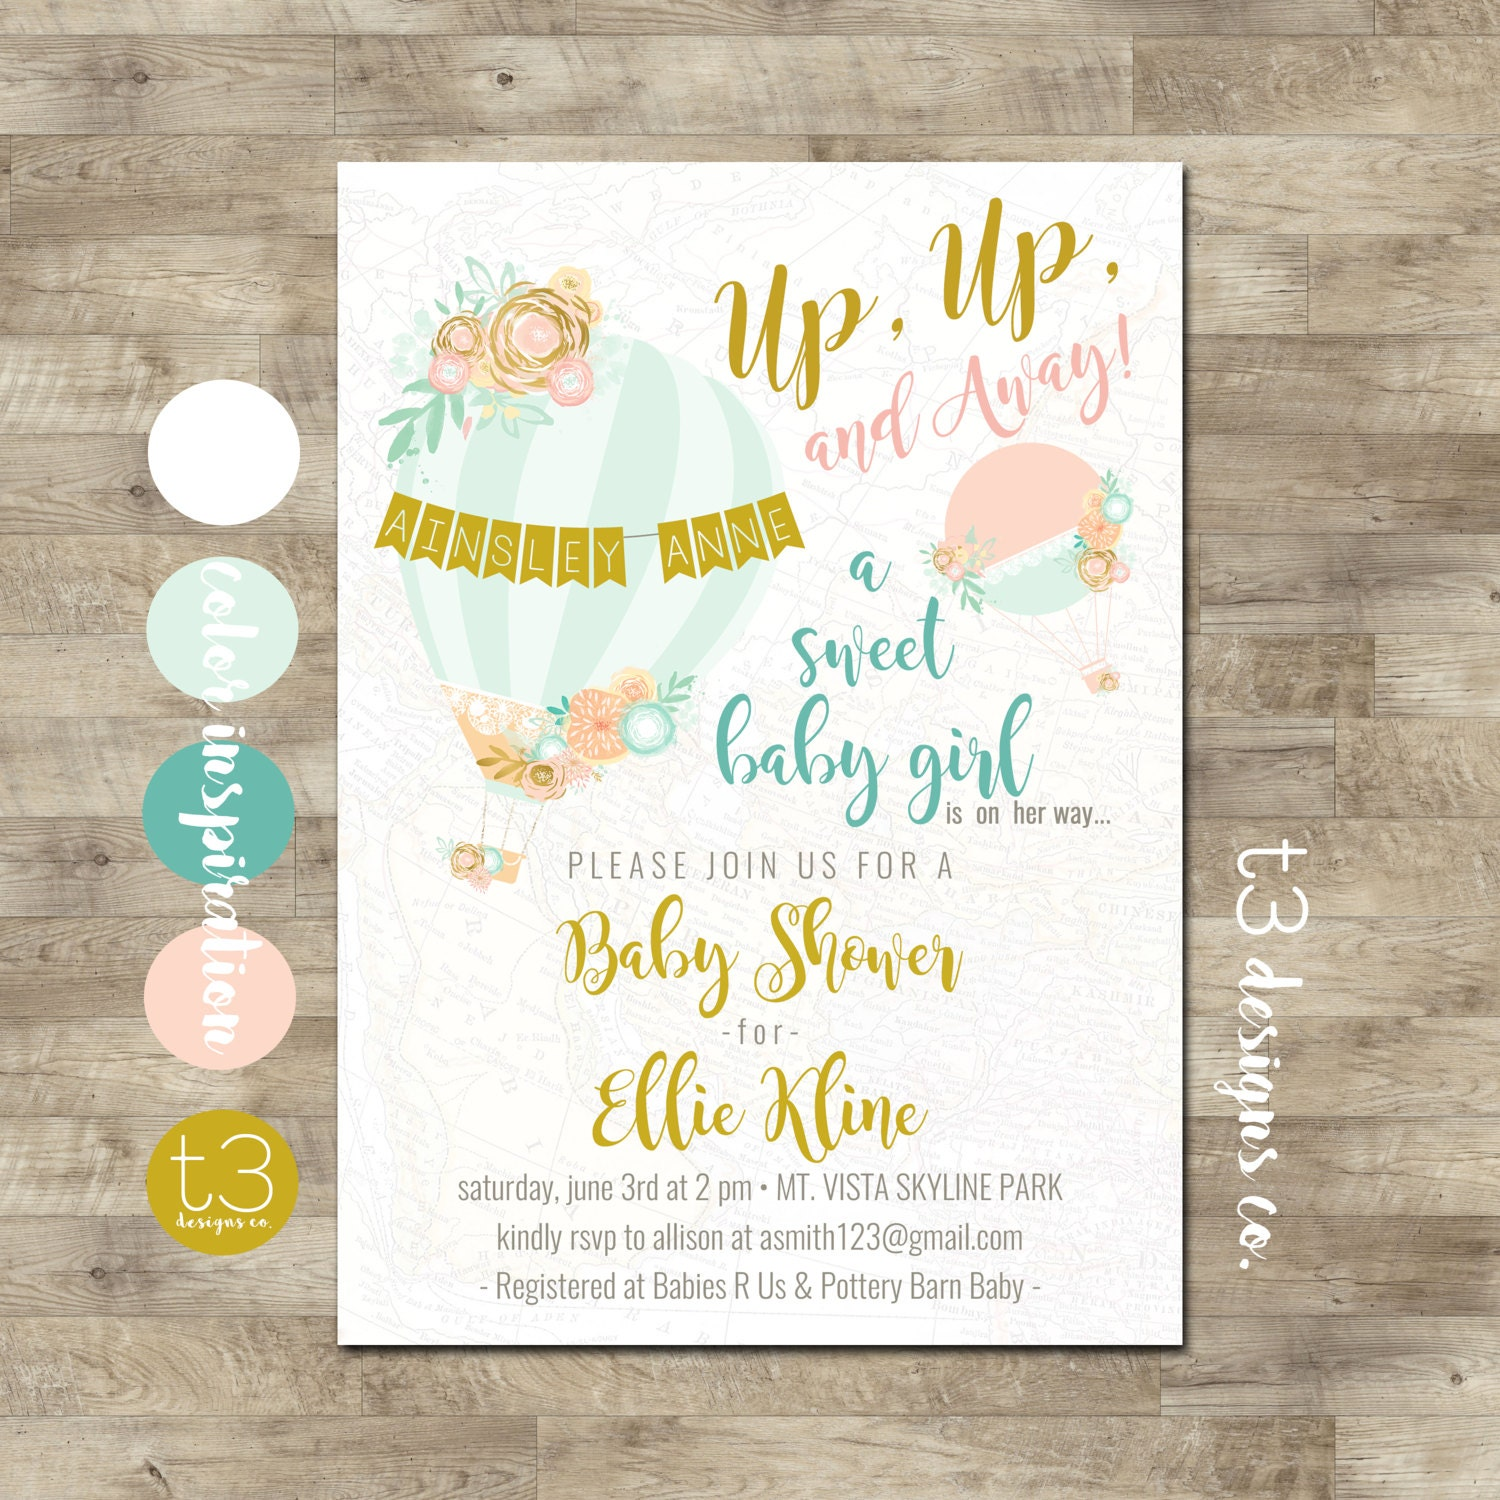 Hot Air balloon baby shower invitation, Up Up and Away baby shower ...